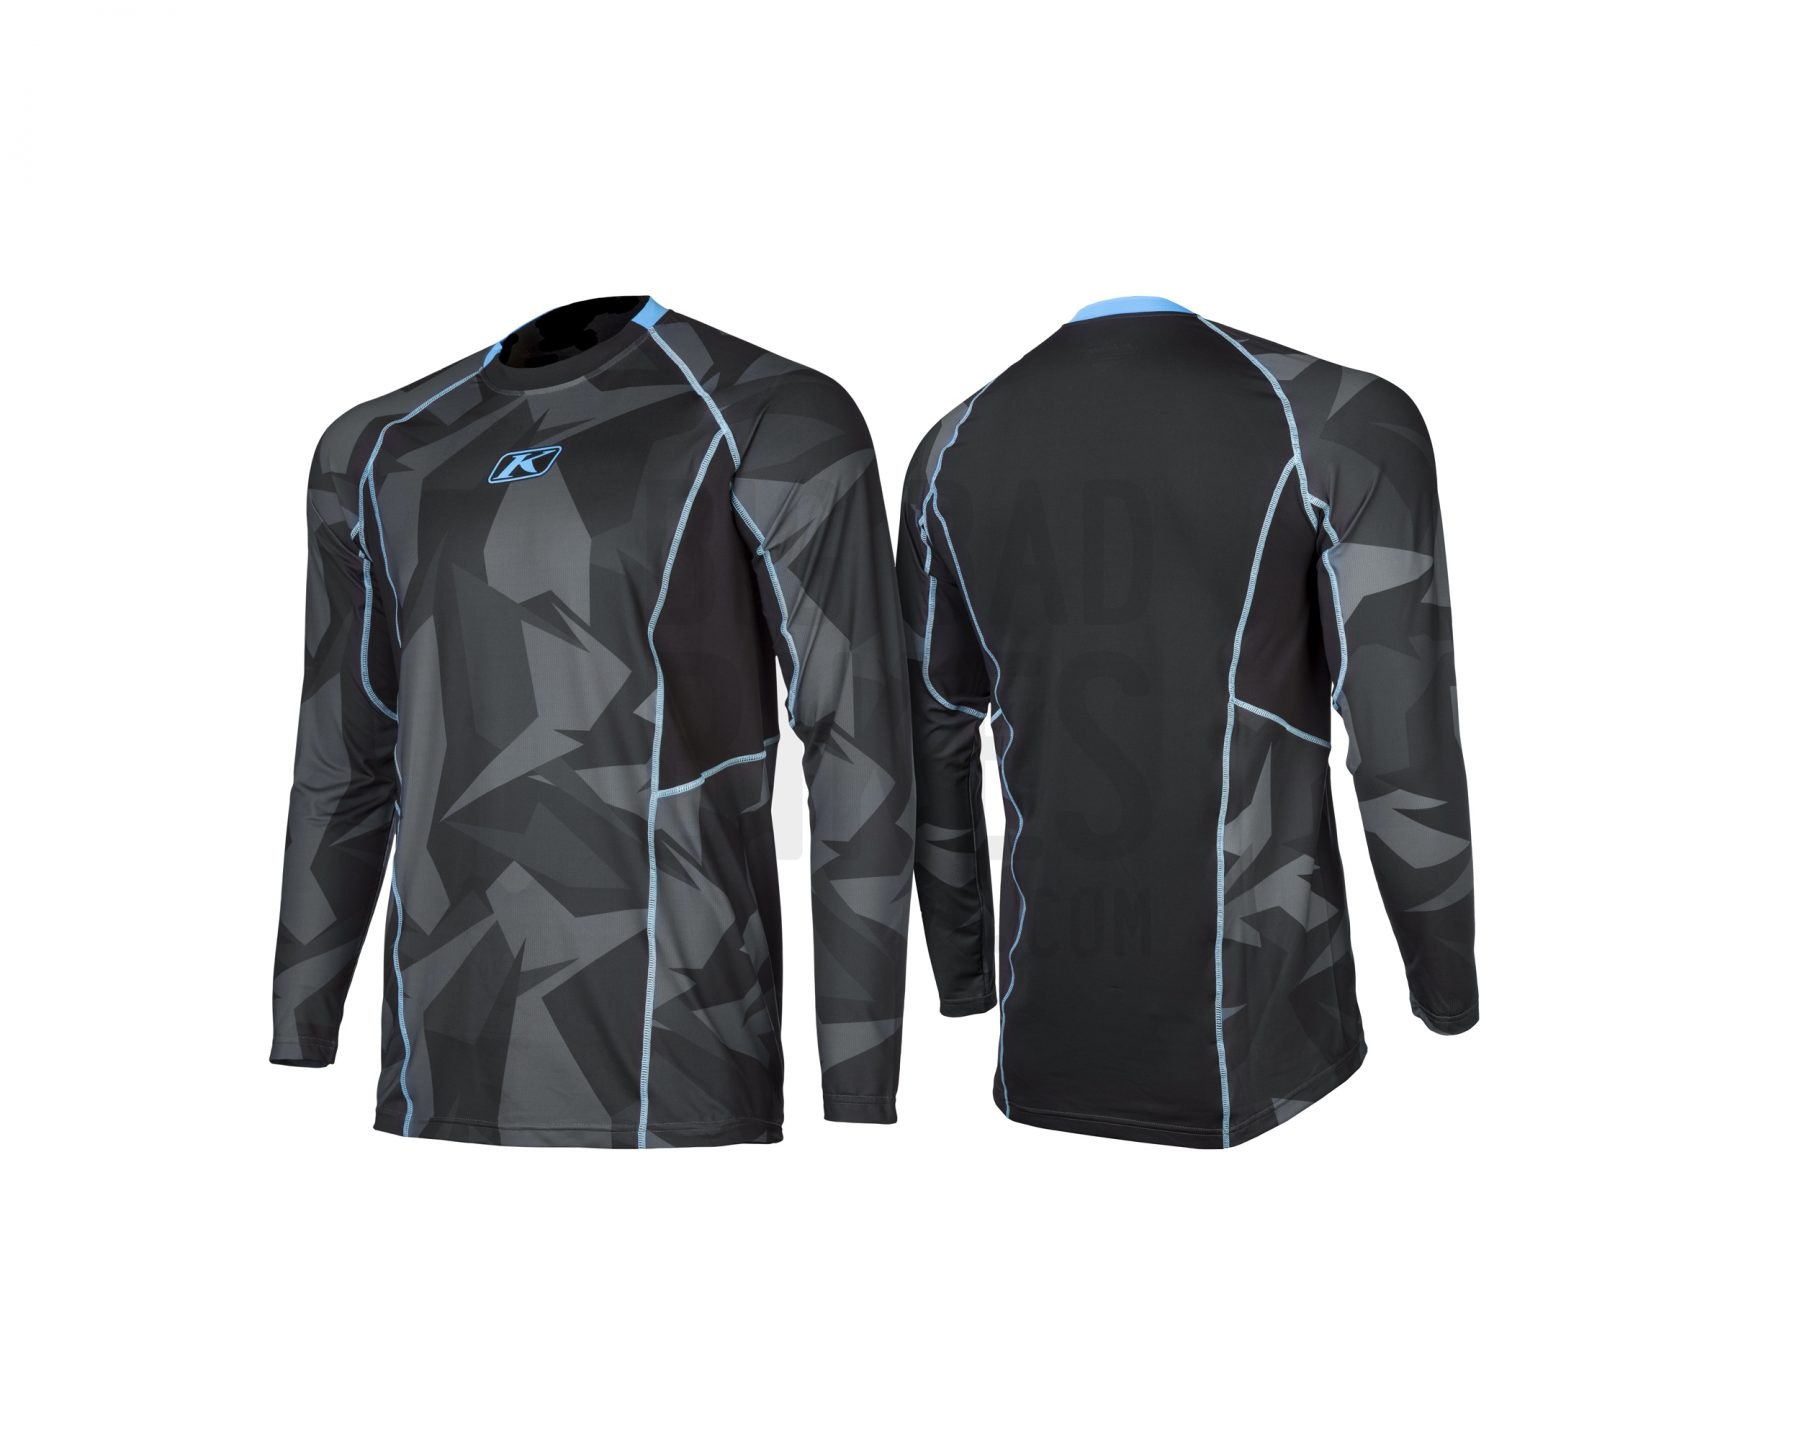 Aggressor Shirt LS -1.0 3504-000_Camo_Secondary 01